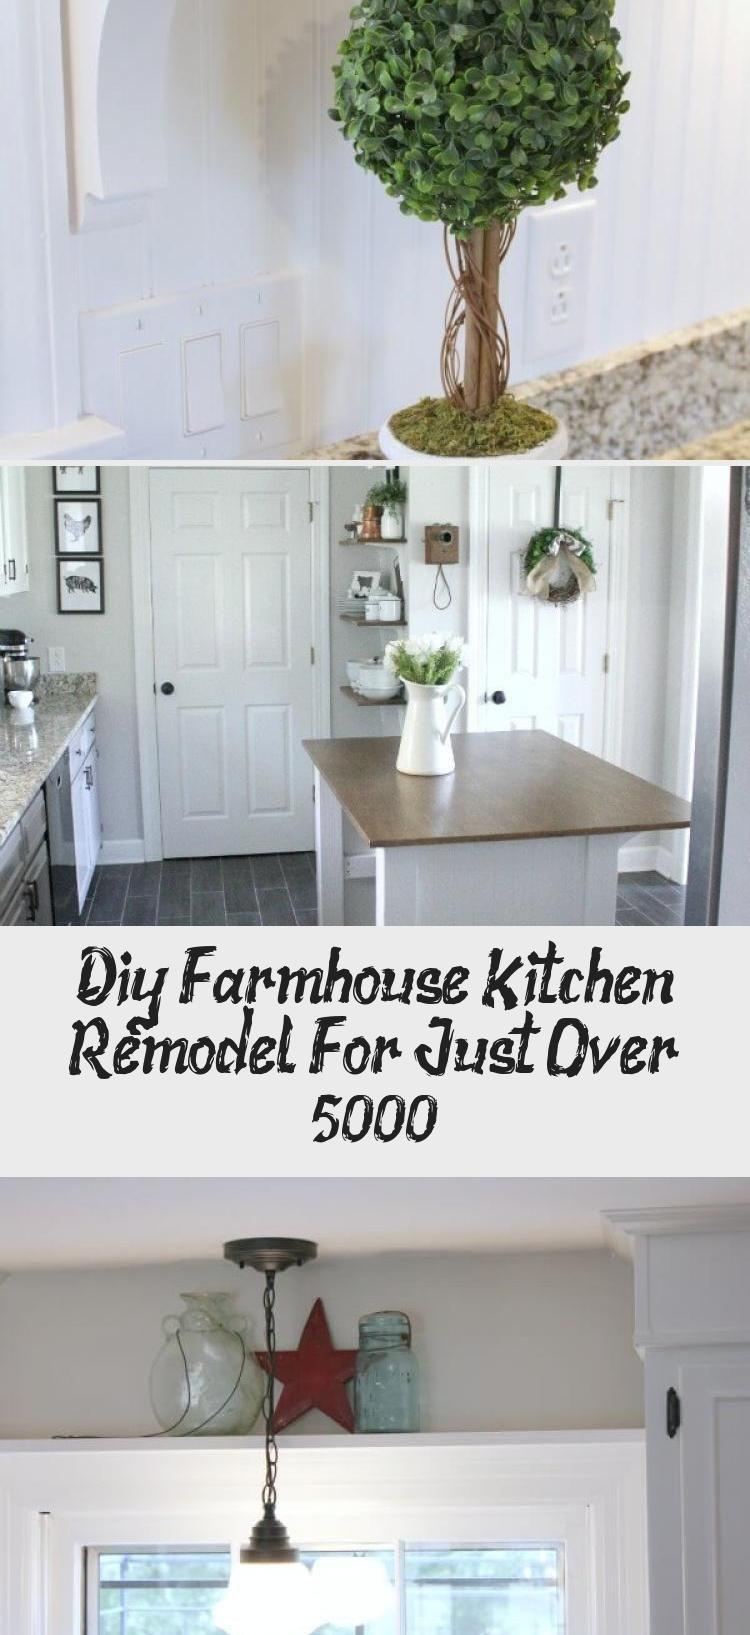 diy farmhouse kitchen remodel for just over 5000 decorations in 2020 farmhouse kitchen on kitchen remodel under 5000 id=95660